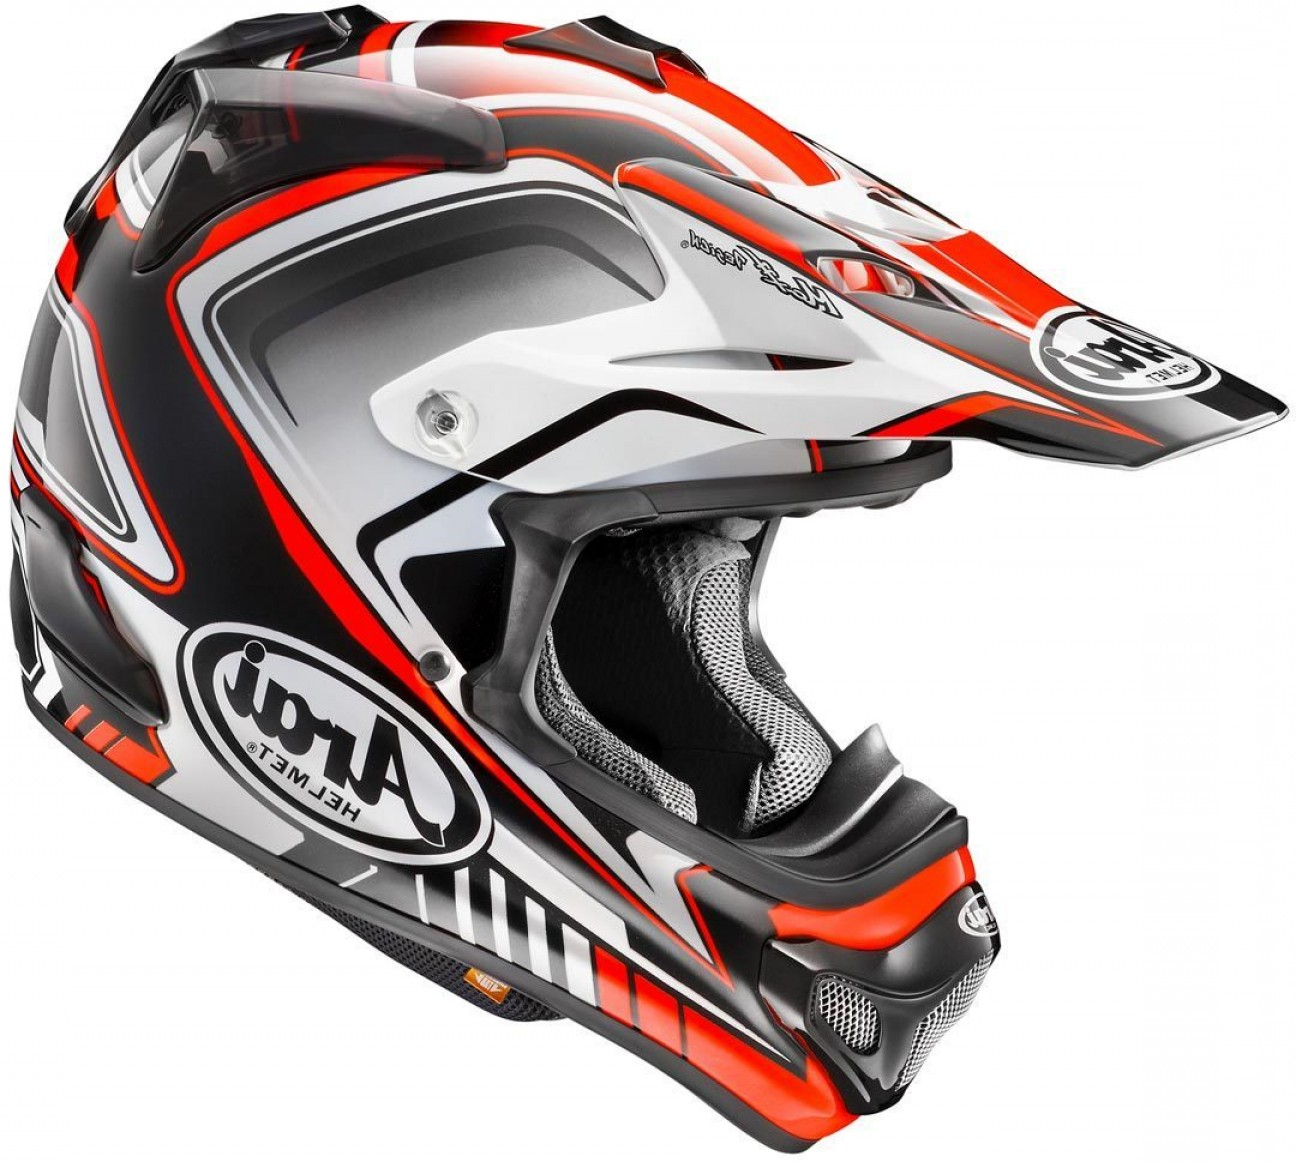 Arai Vector 2 Model: Arai Mxv Speedy Motocross Helmet Red Arai Vector Reviewcomplete In Specifications P